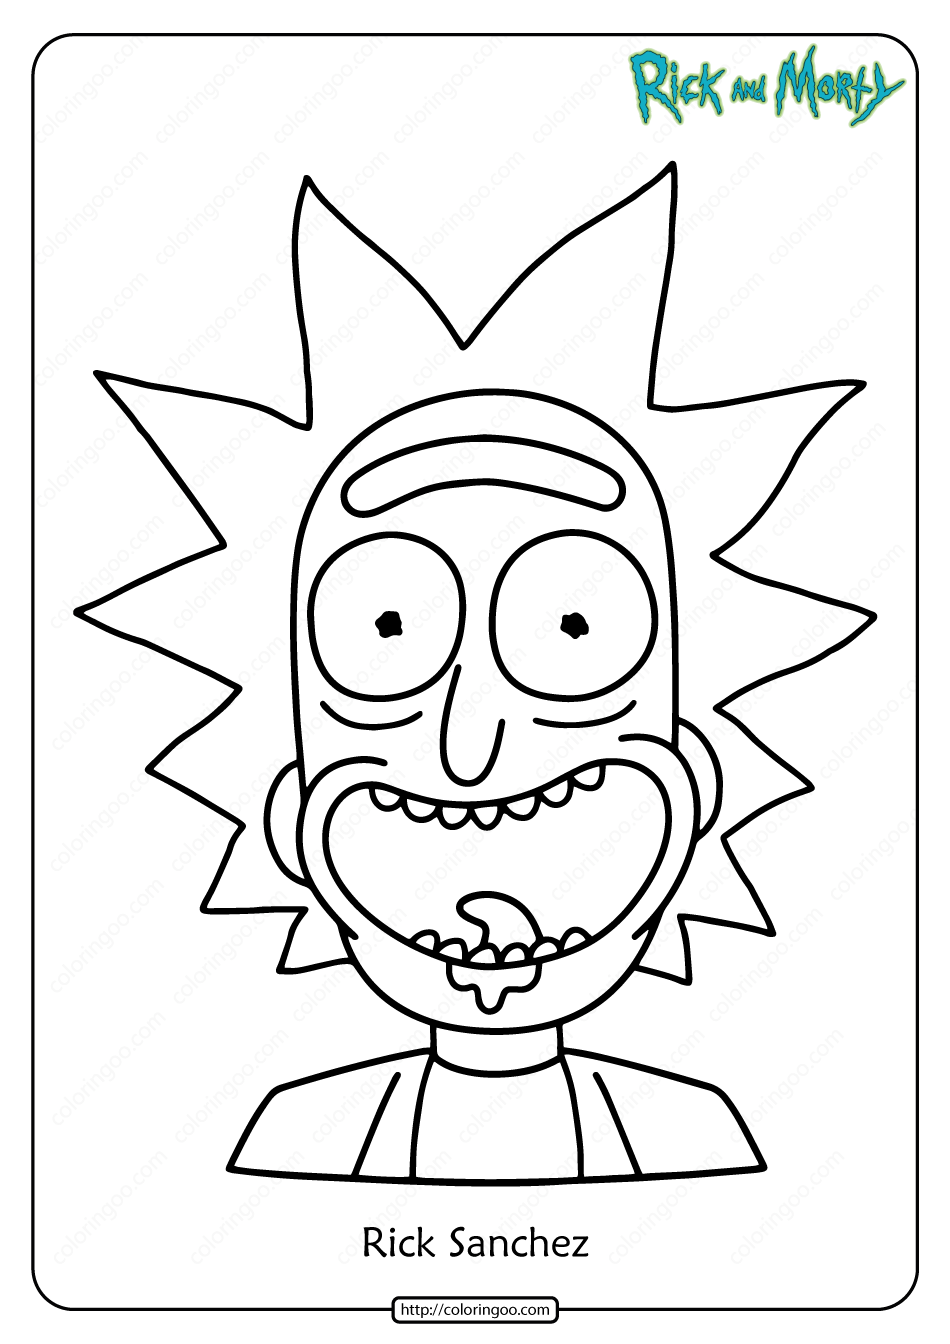 Free Printable Rick Sanchez Pdf Coloring Page in 2020